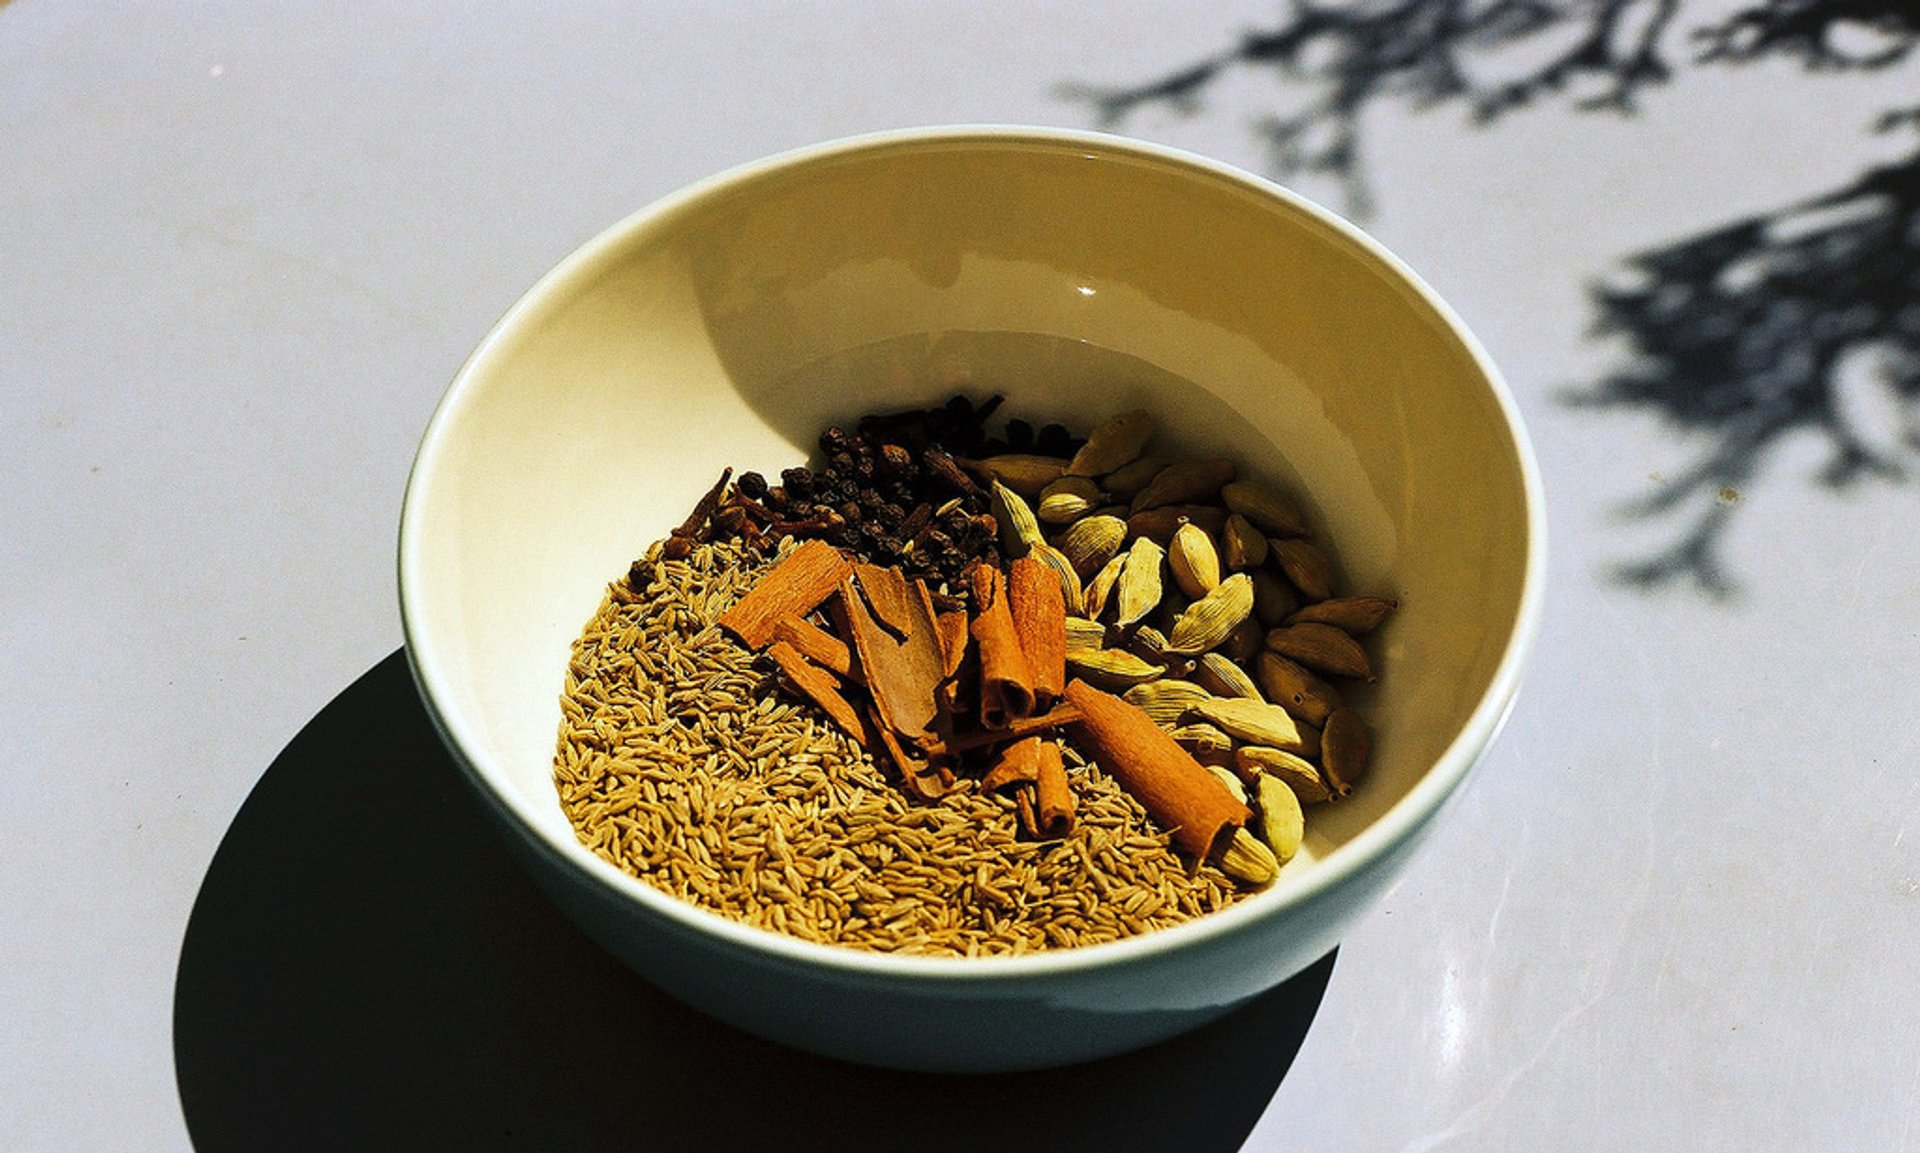 Cumin seeds, cloves, cardamom pods and cinnamon sticks—spices to be mixed with rice and cooked to make a traditional dish (Zanzibar Pilau) 2019